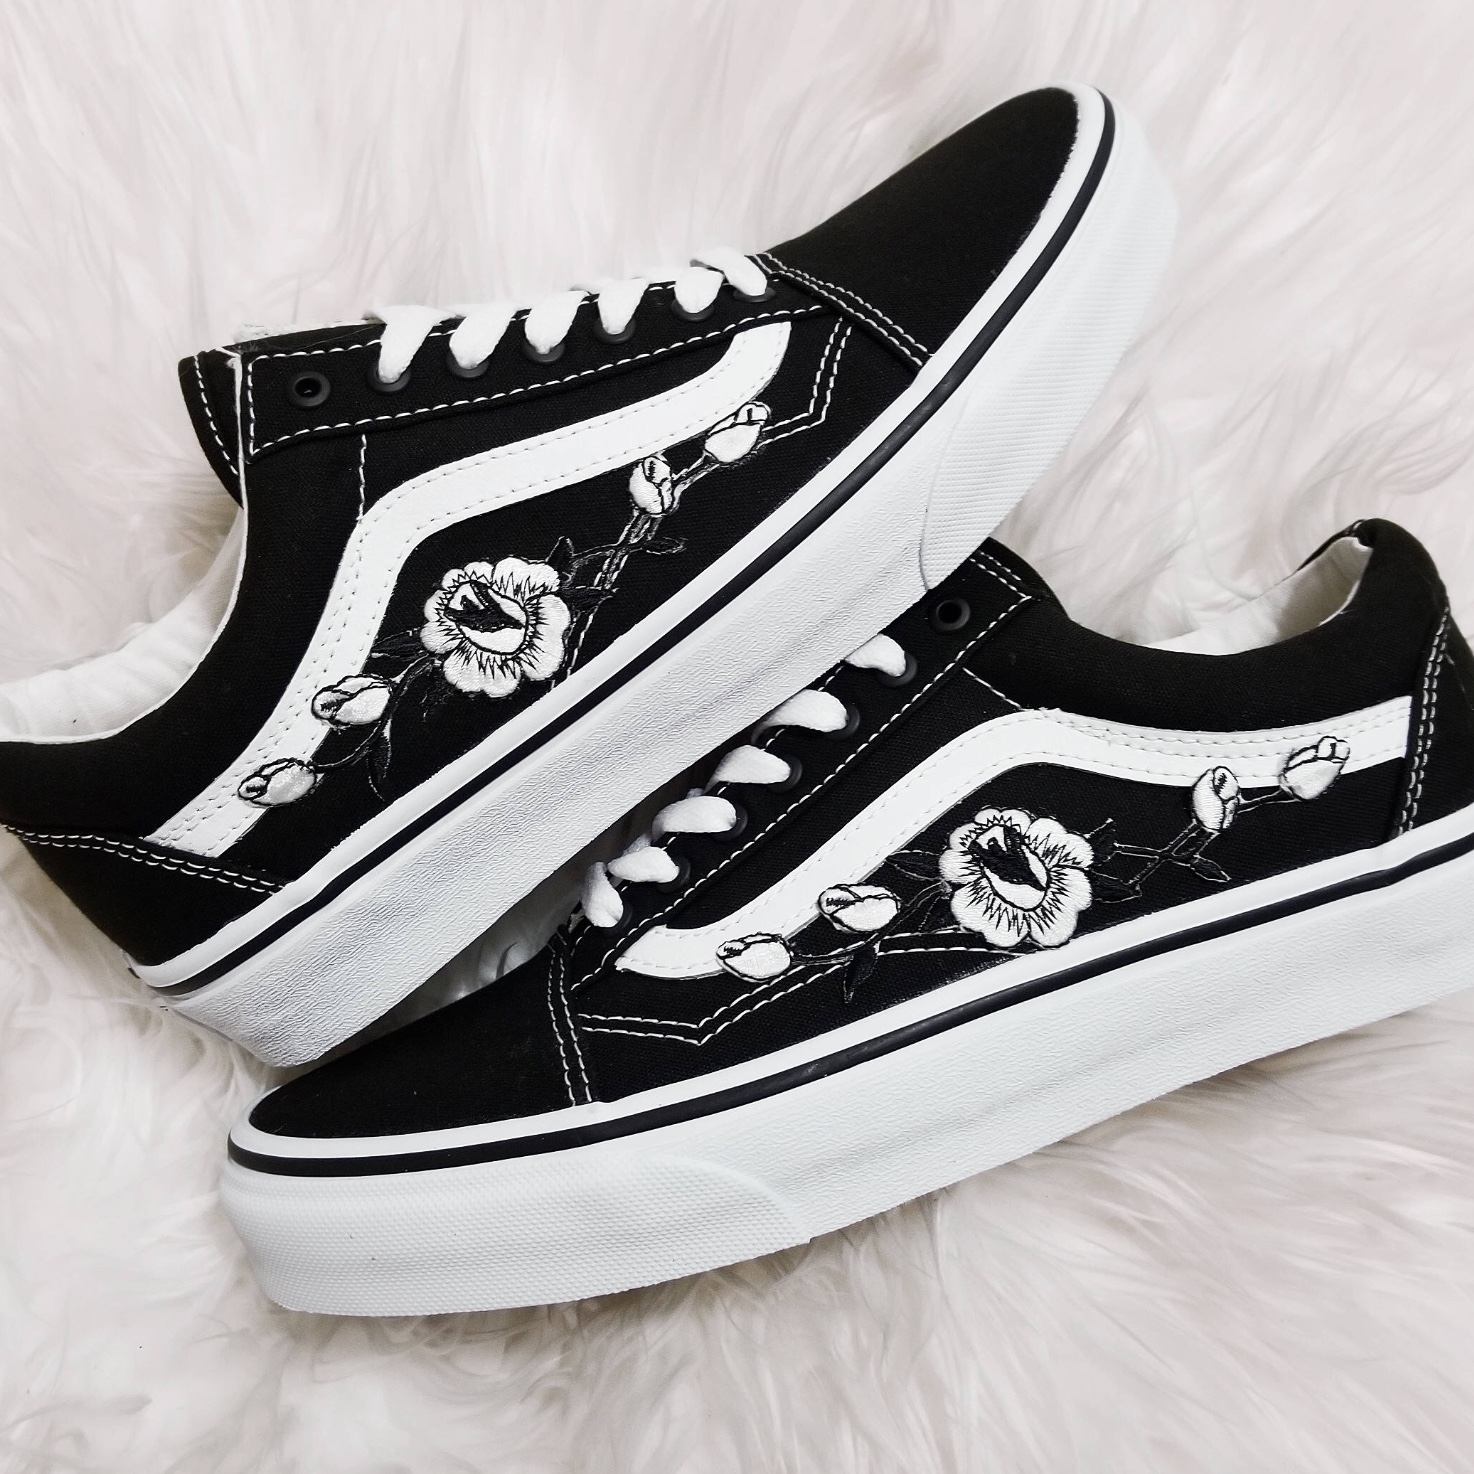 Black and white classic vans with embroidered black Depop